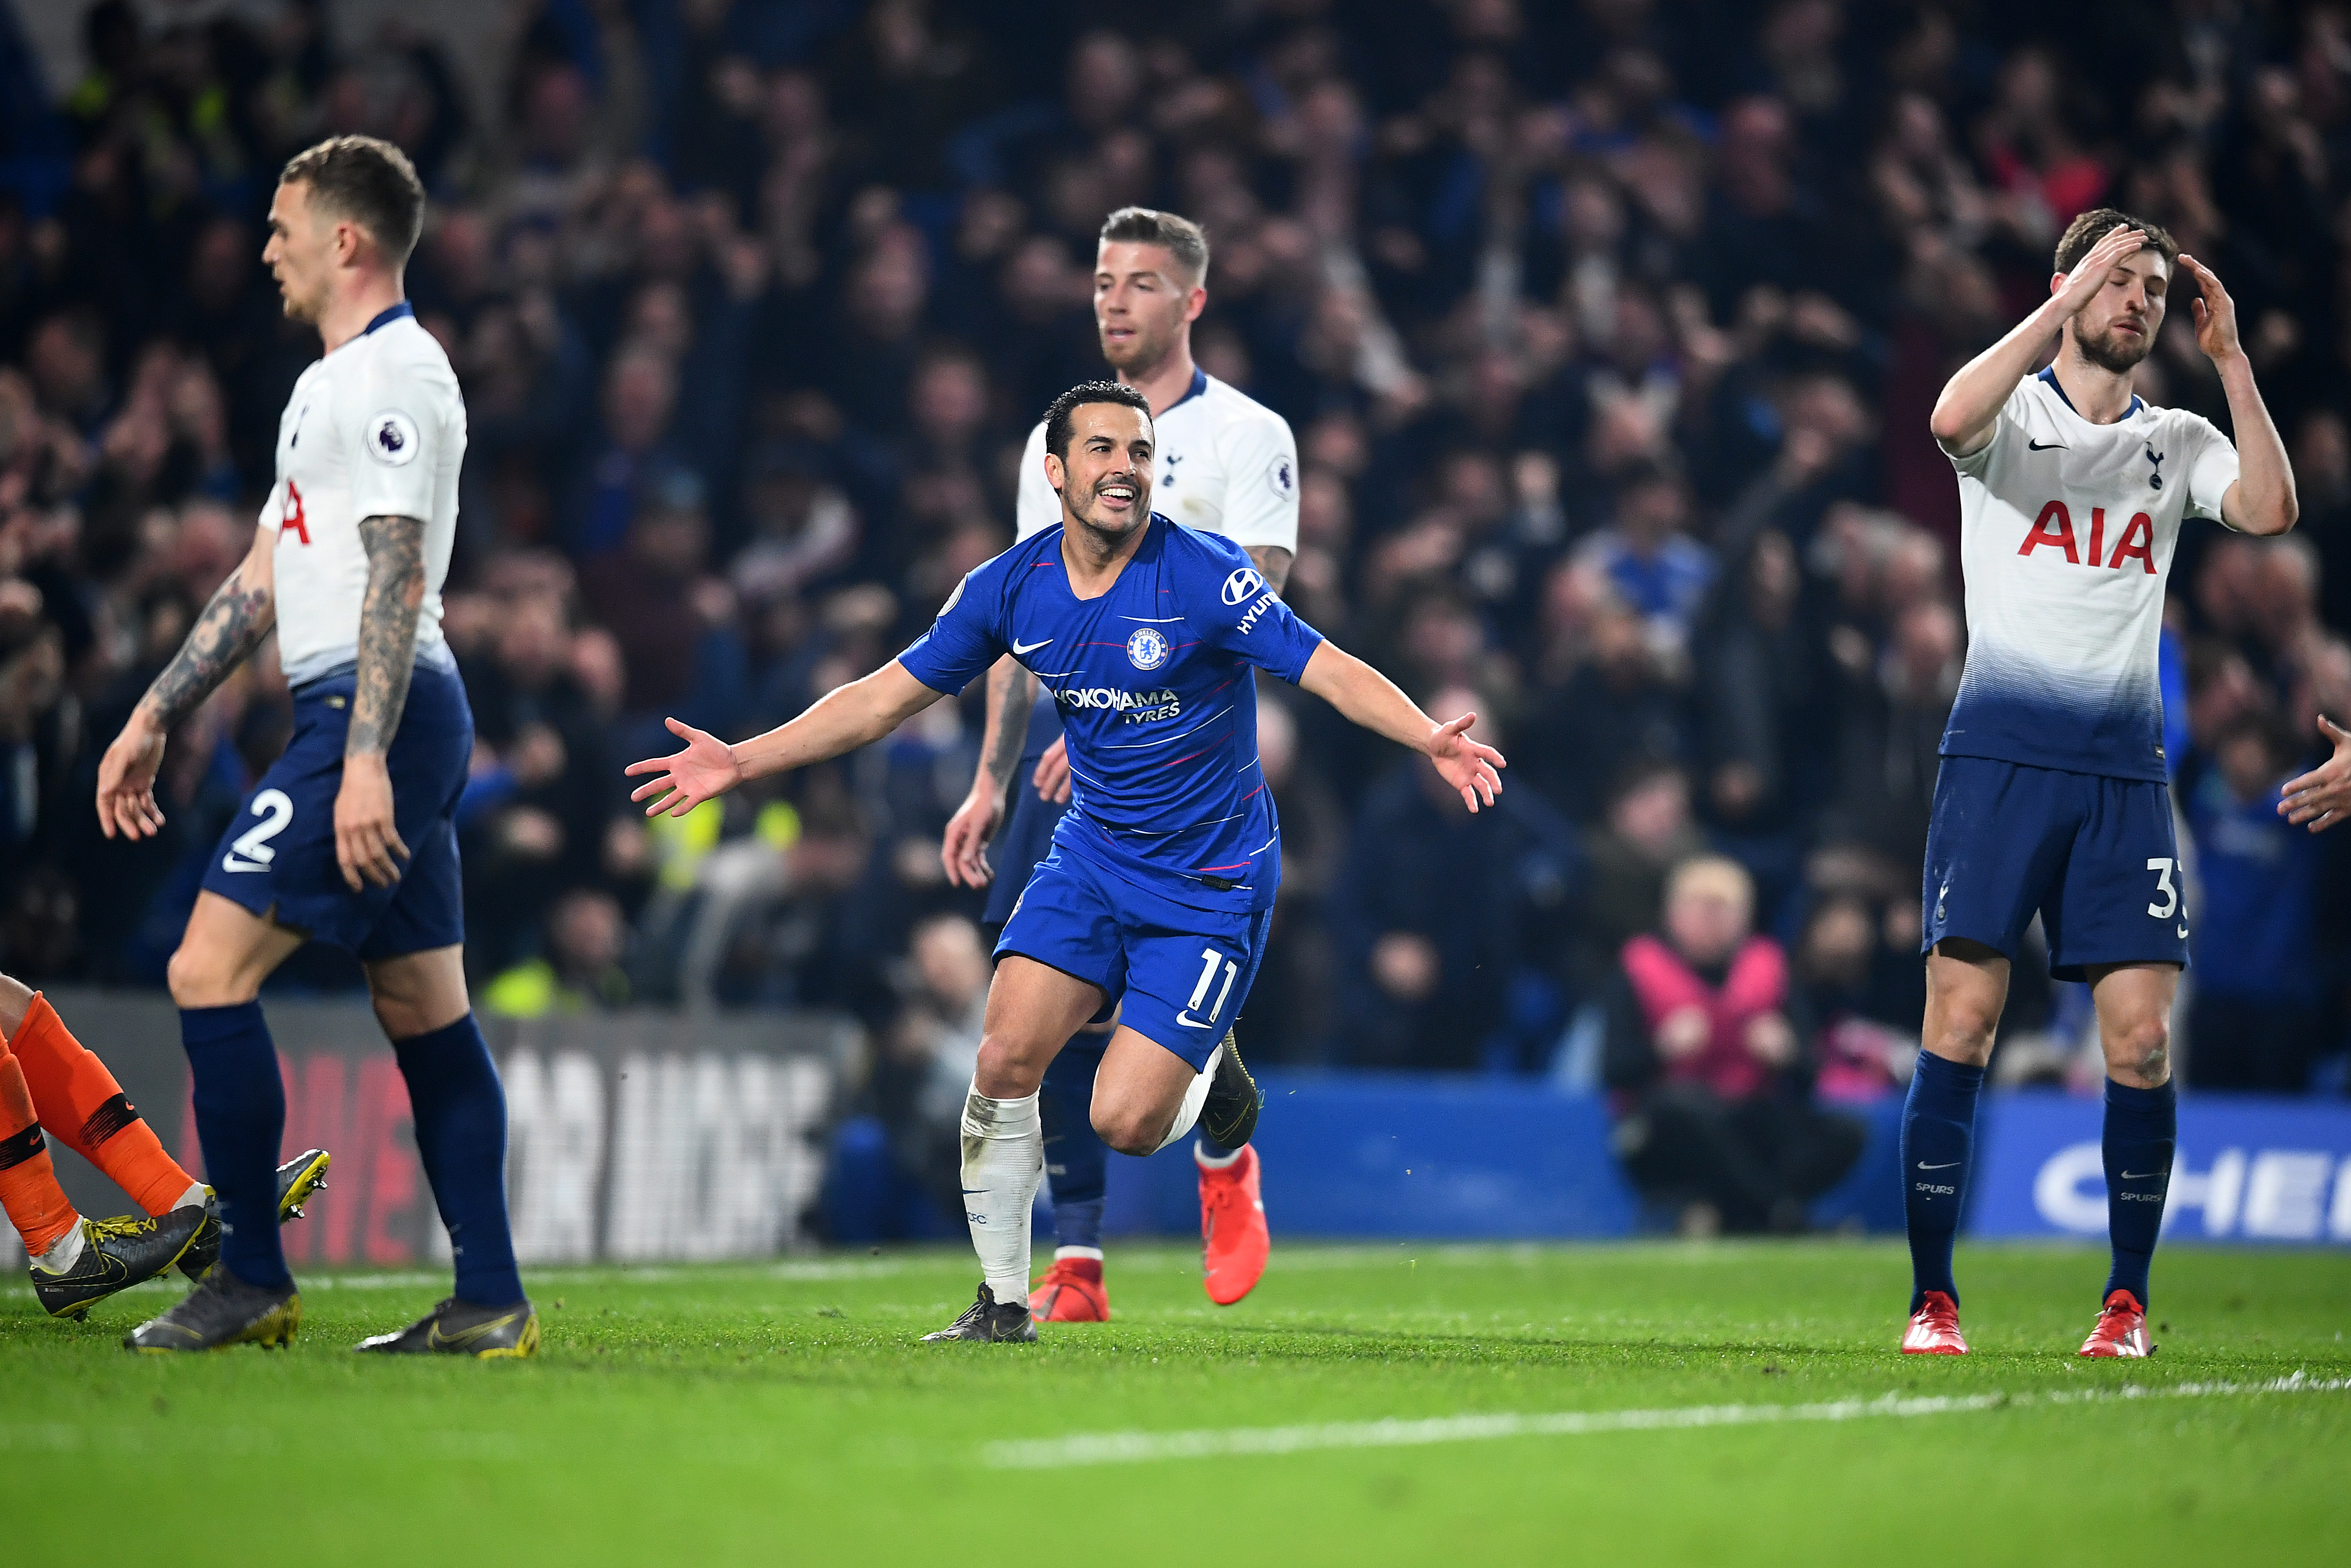 Chelsea dented Tottenham's slim hopes of a title challenge. (Photo courtesy: AFP/Getty)